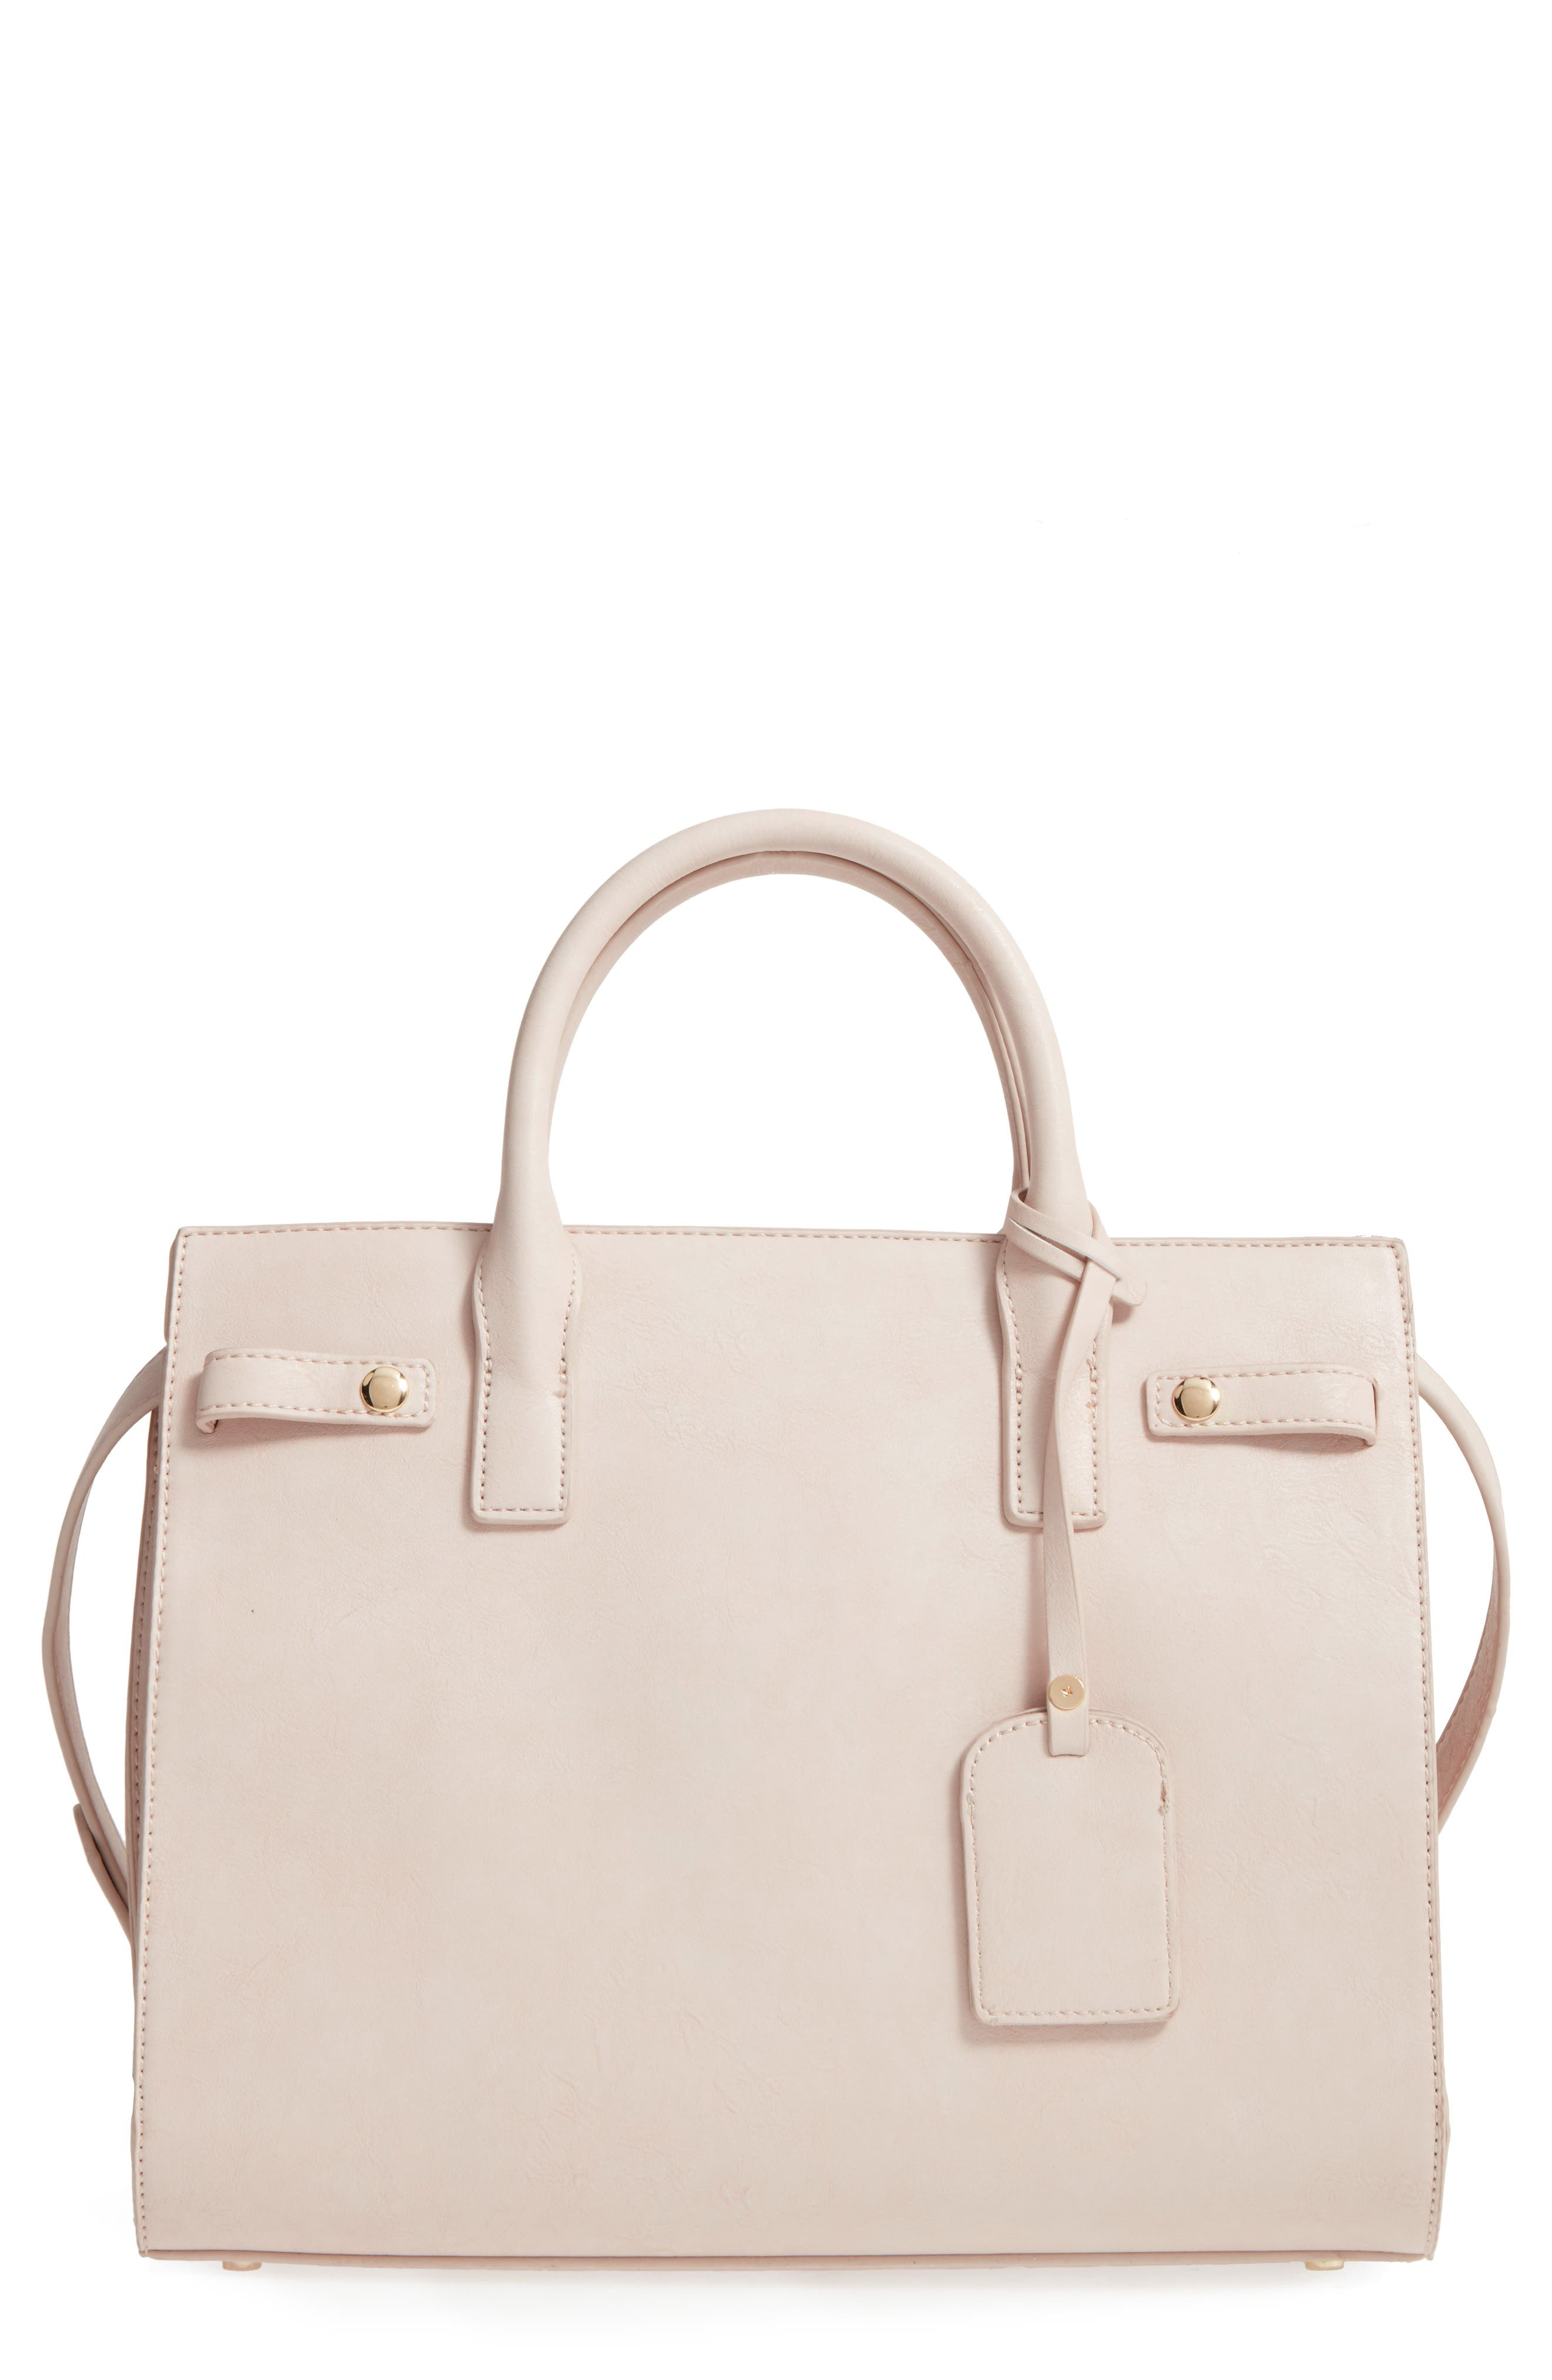 Alternate Image 1 Selected - Sole Society Athenia Faux Leather Satchel